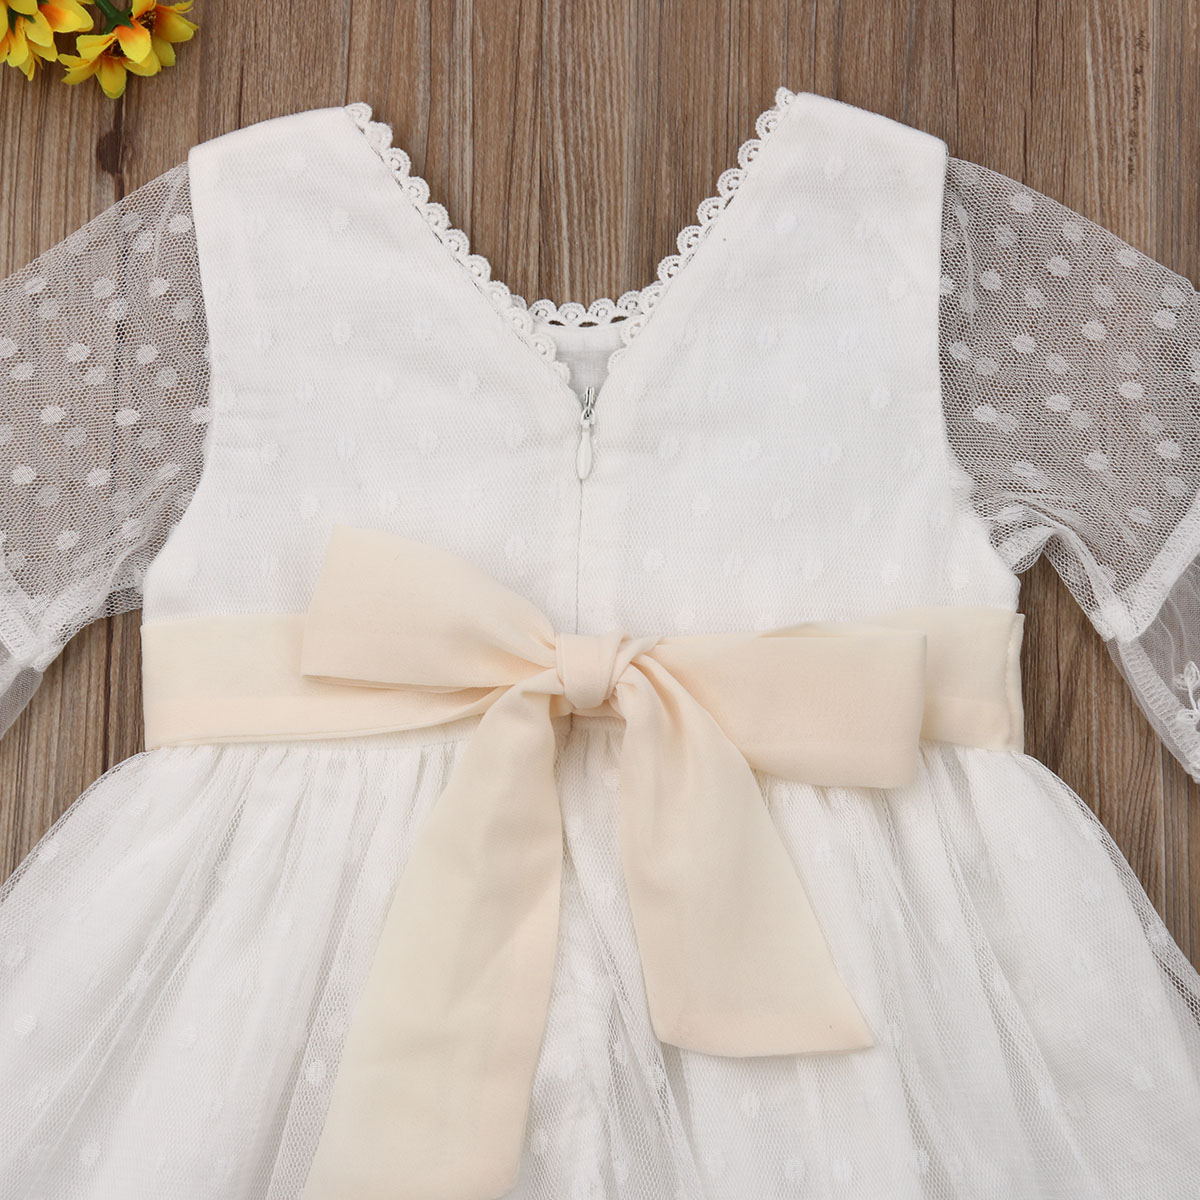 Cute Flower Lace Baby Girl Dress Princess Pageant Brides maid Evening Wedding Gown Tutu Princess Children Clothing Kids Party in Dresses from Mother Kids